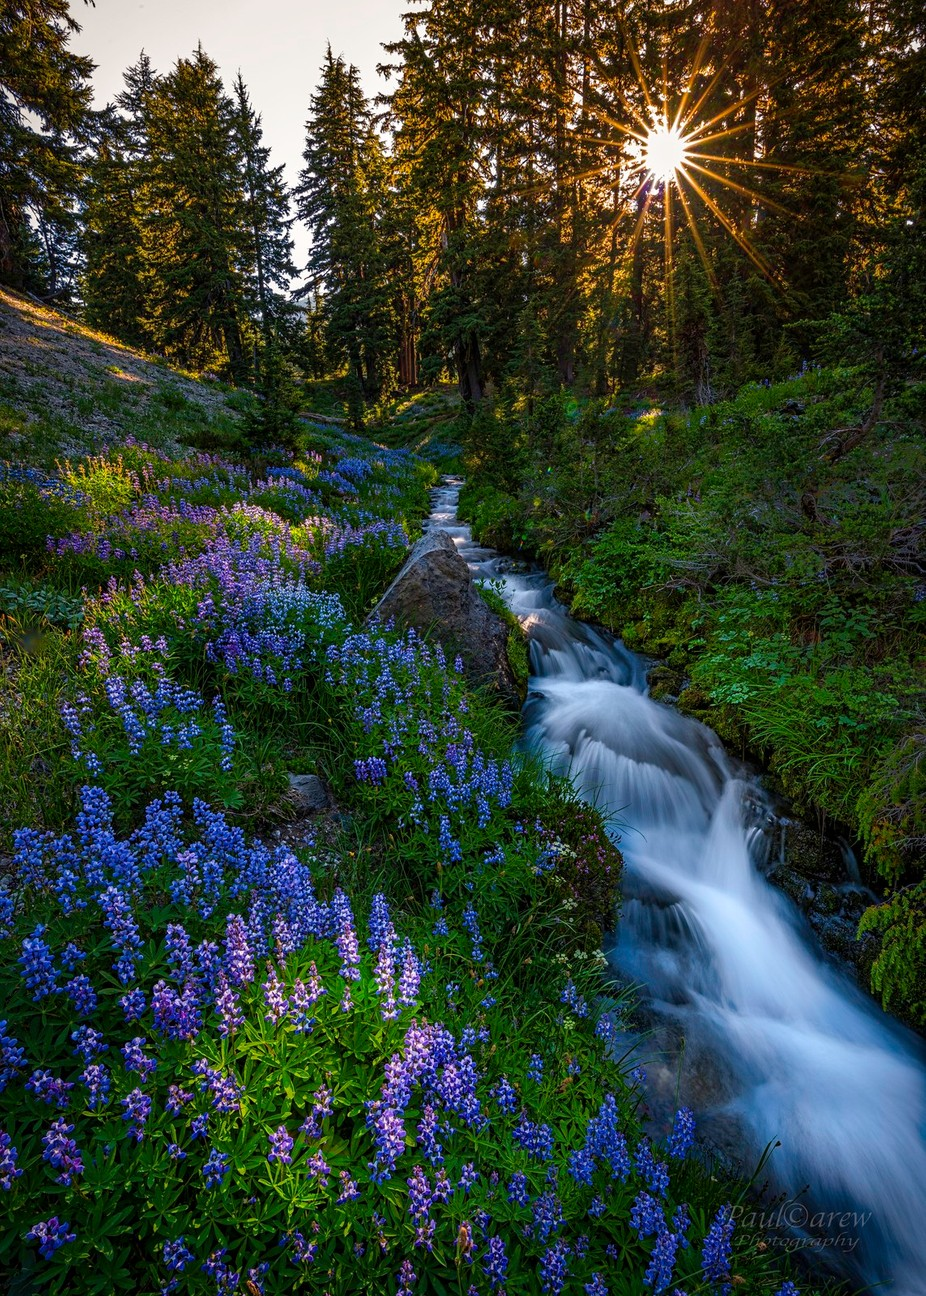 Soda Creek by paulcarew - The Wonders of the World Photo Contest